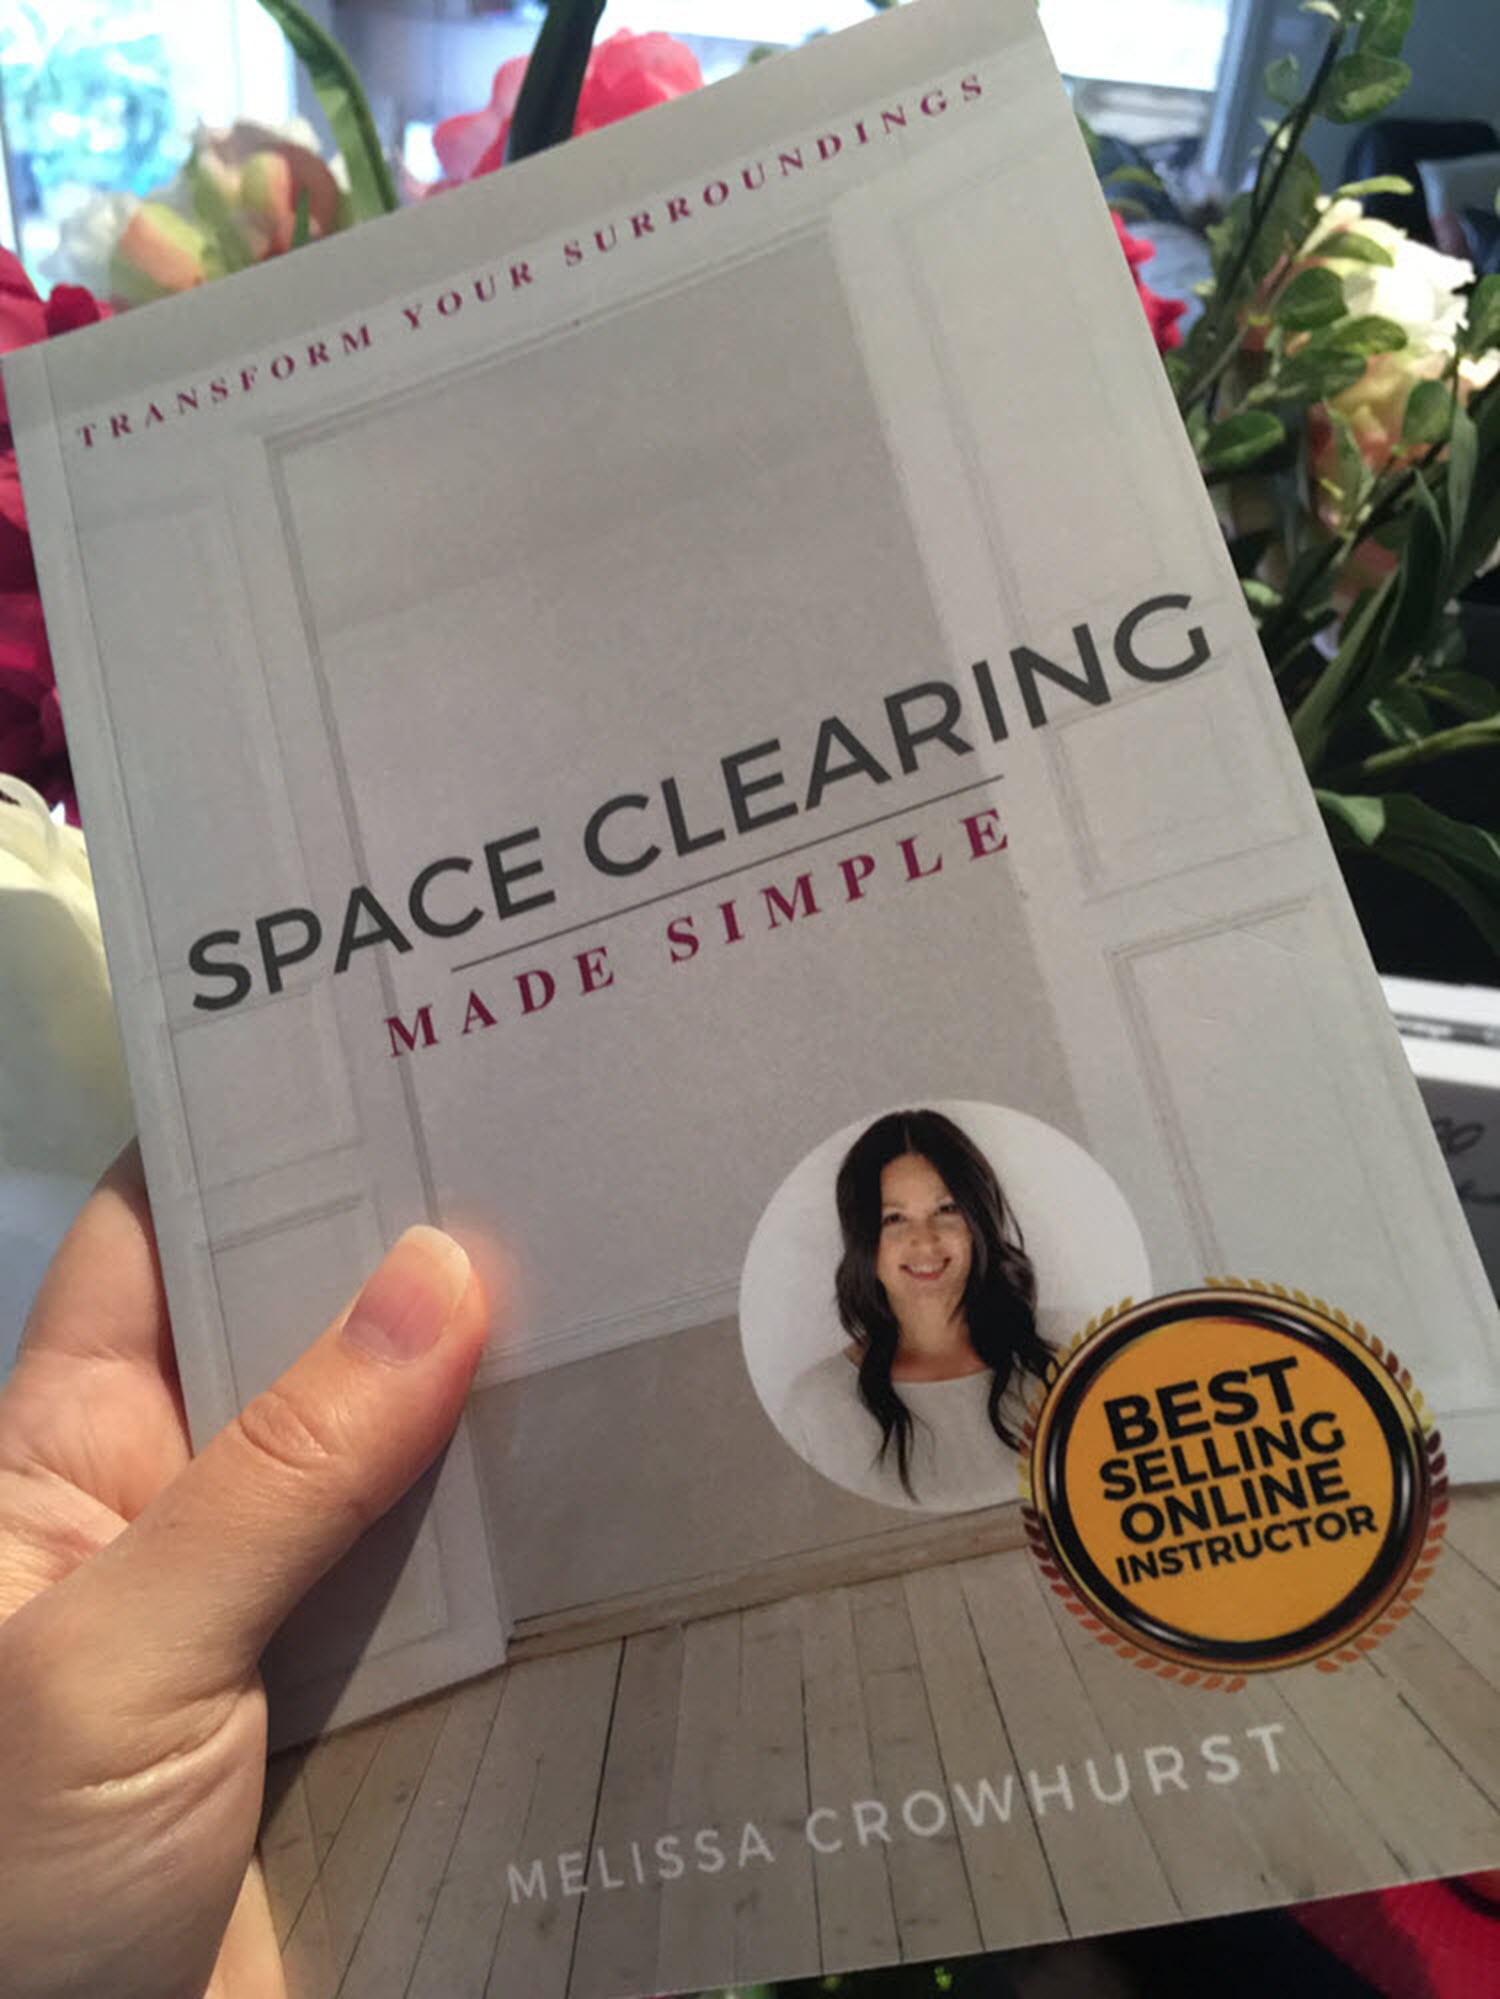 Space Clearing Made Simple Book Hard Copy